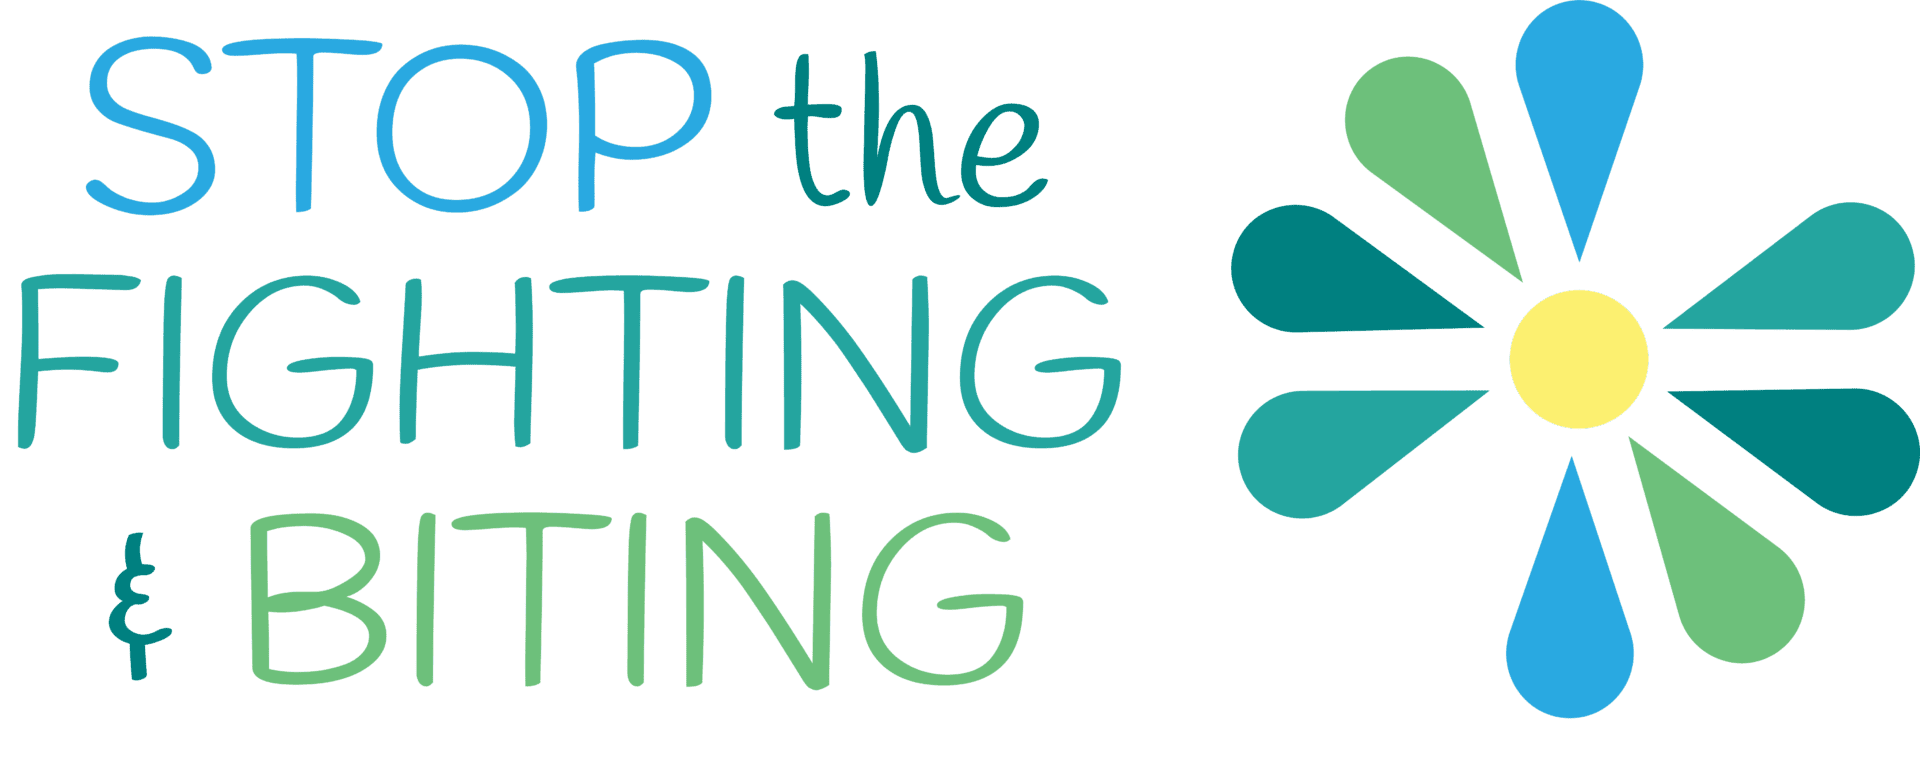 37156702_stop the fighting and biting_Final